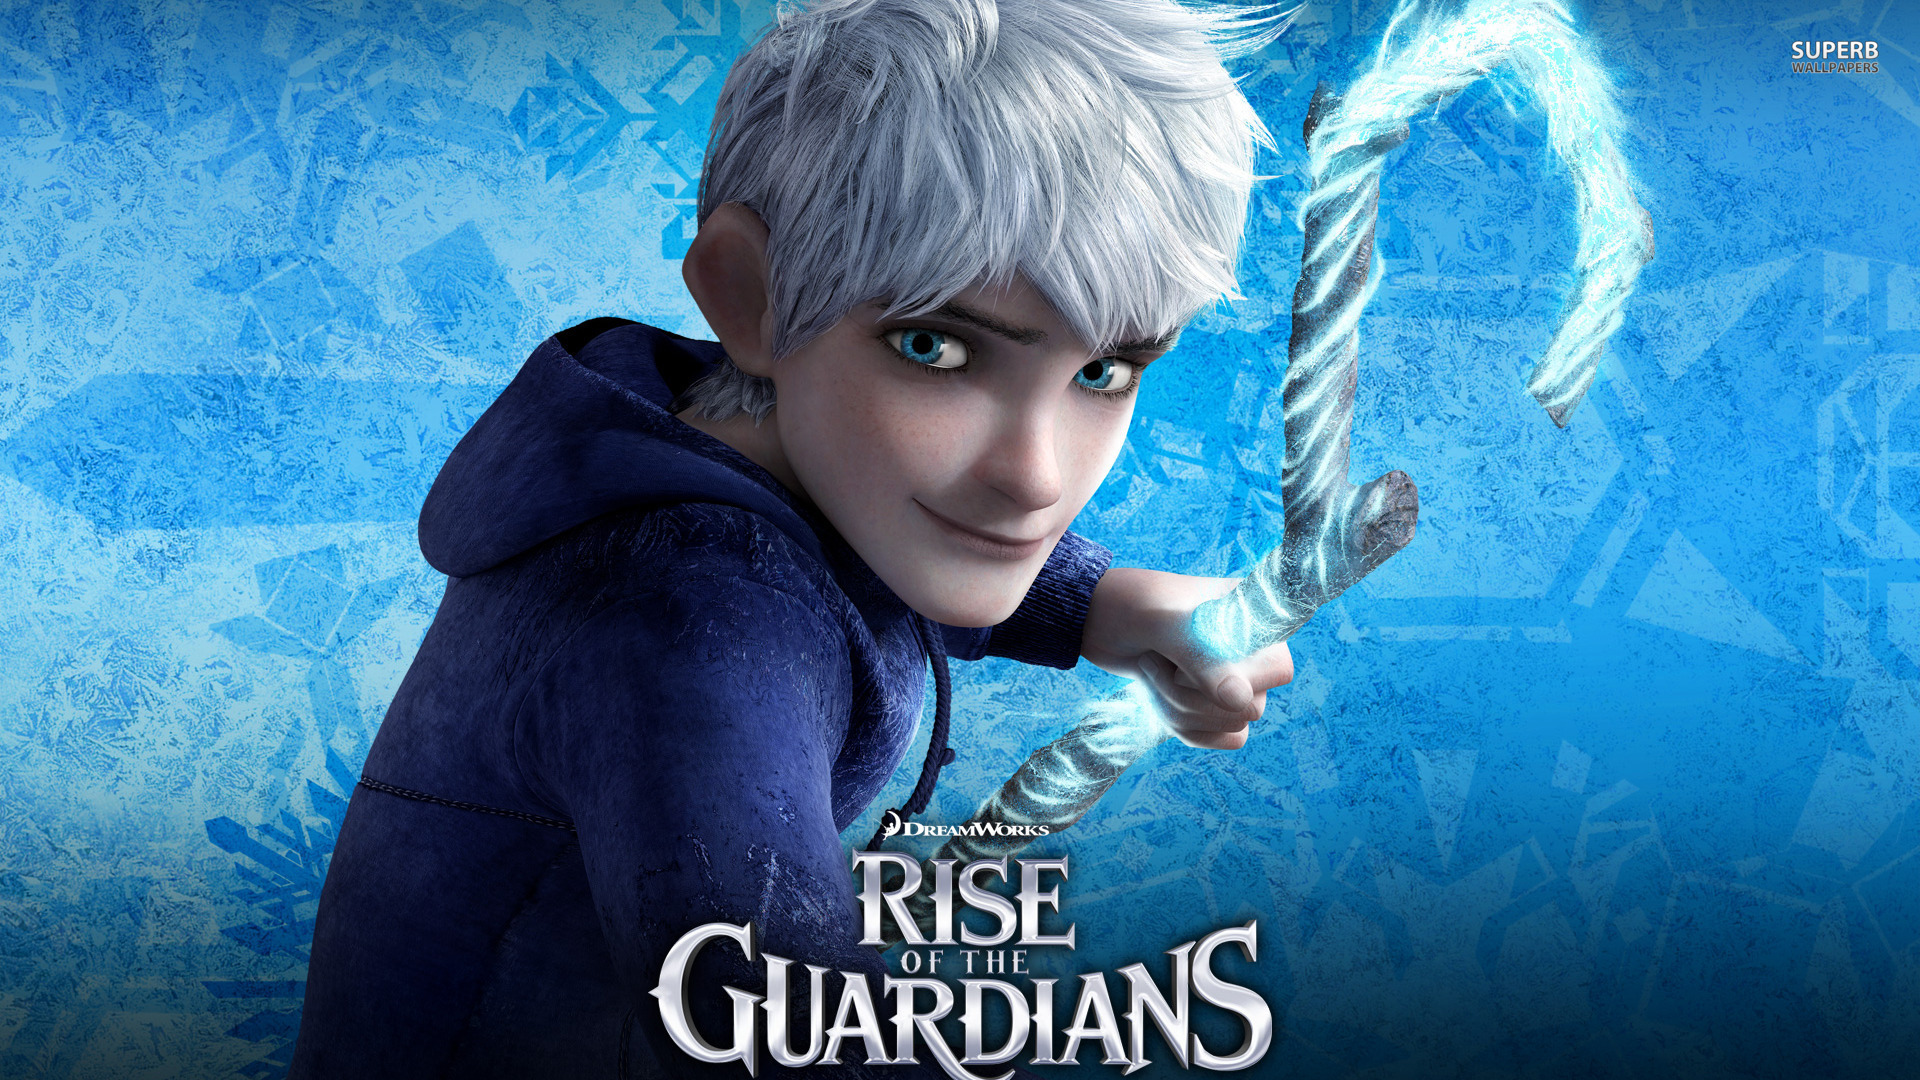 Jack Frost - Childhood Animated Movie Heroes Wallpaper ...